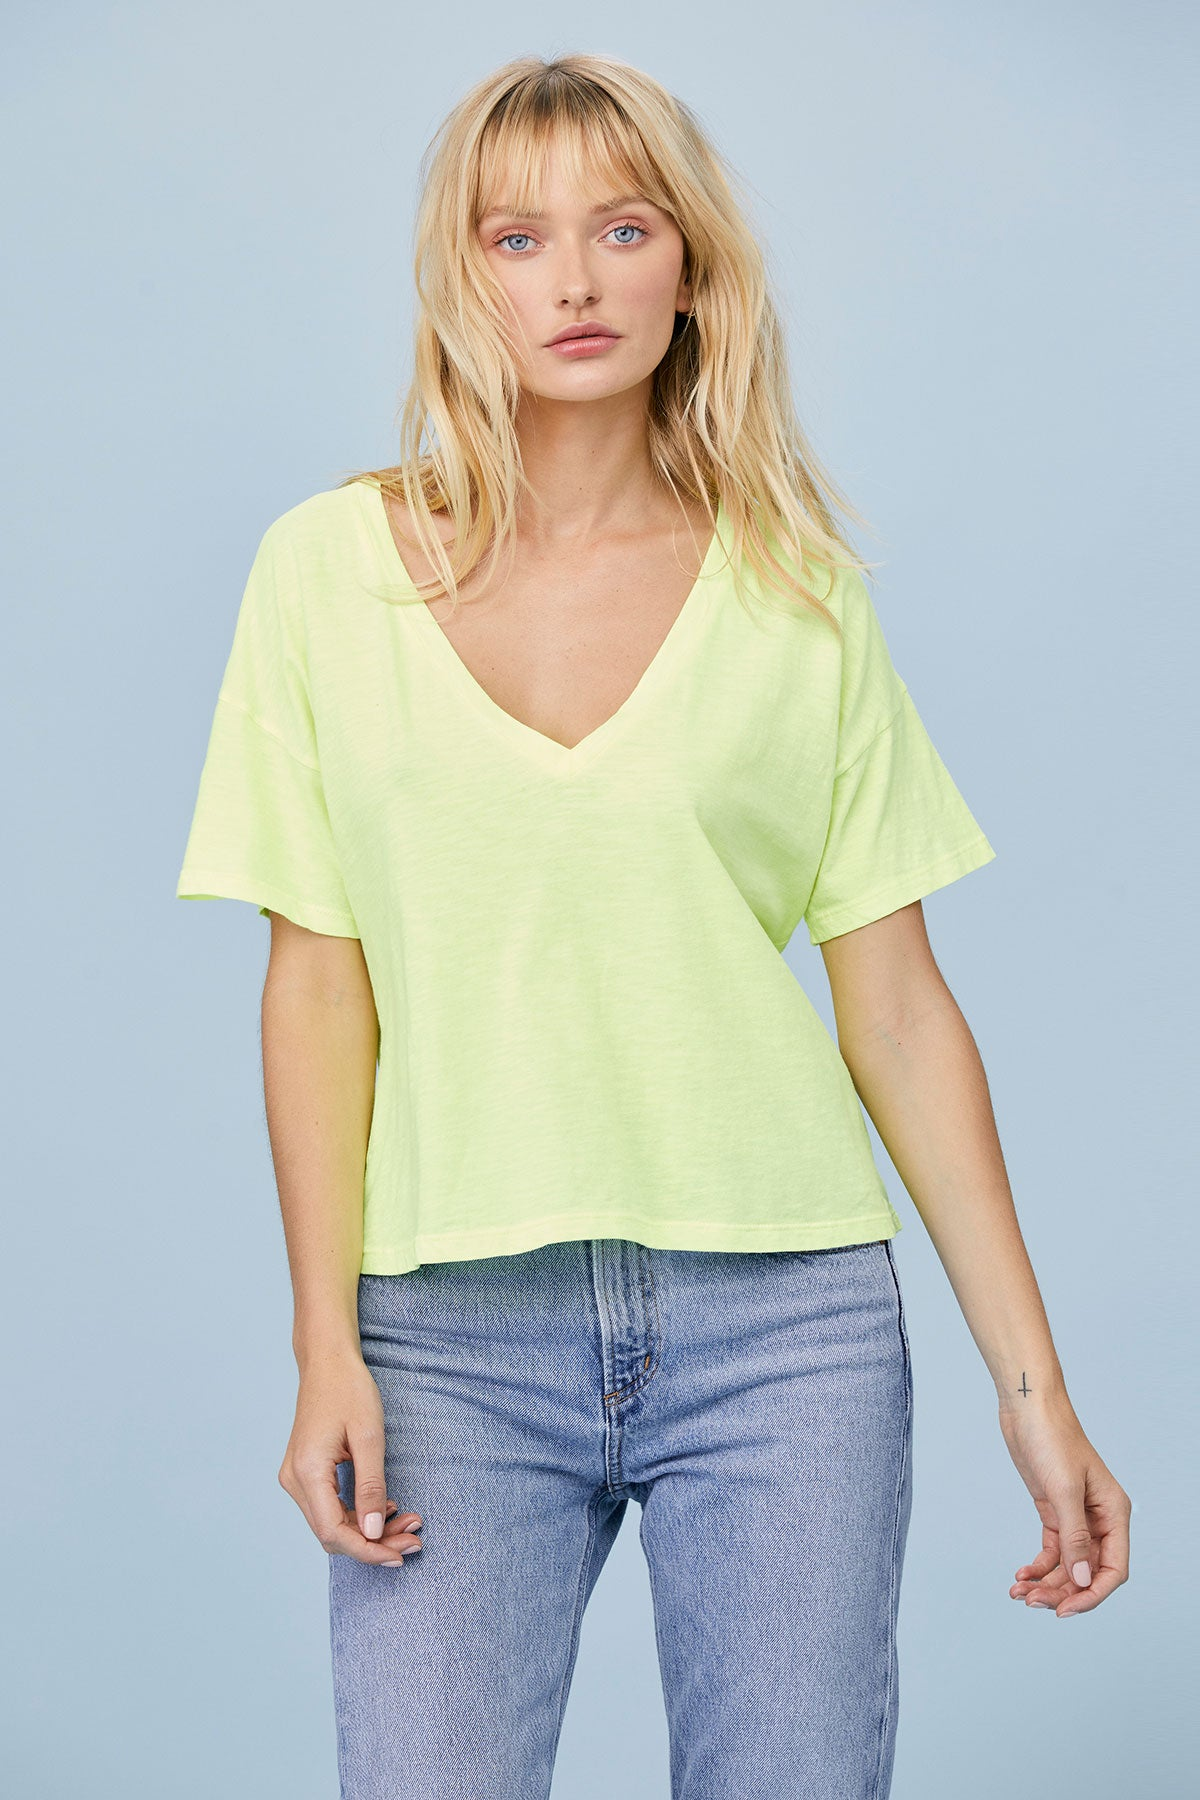 LNA Clothing Boxy V Neck Tee in Neon Yellow